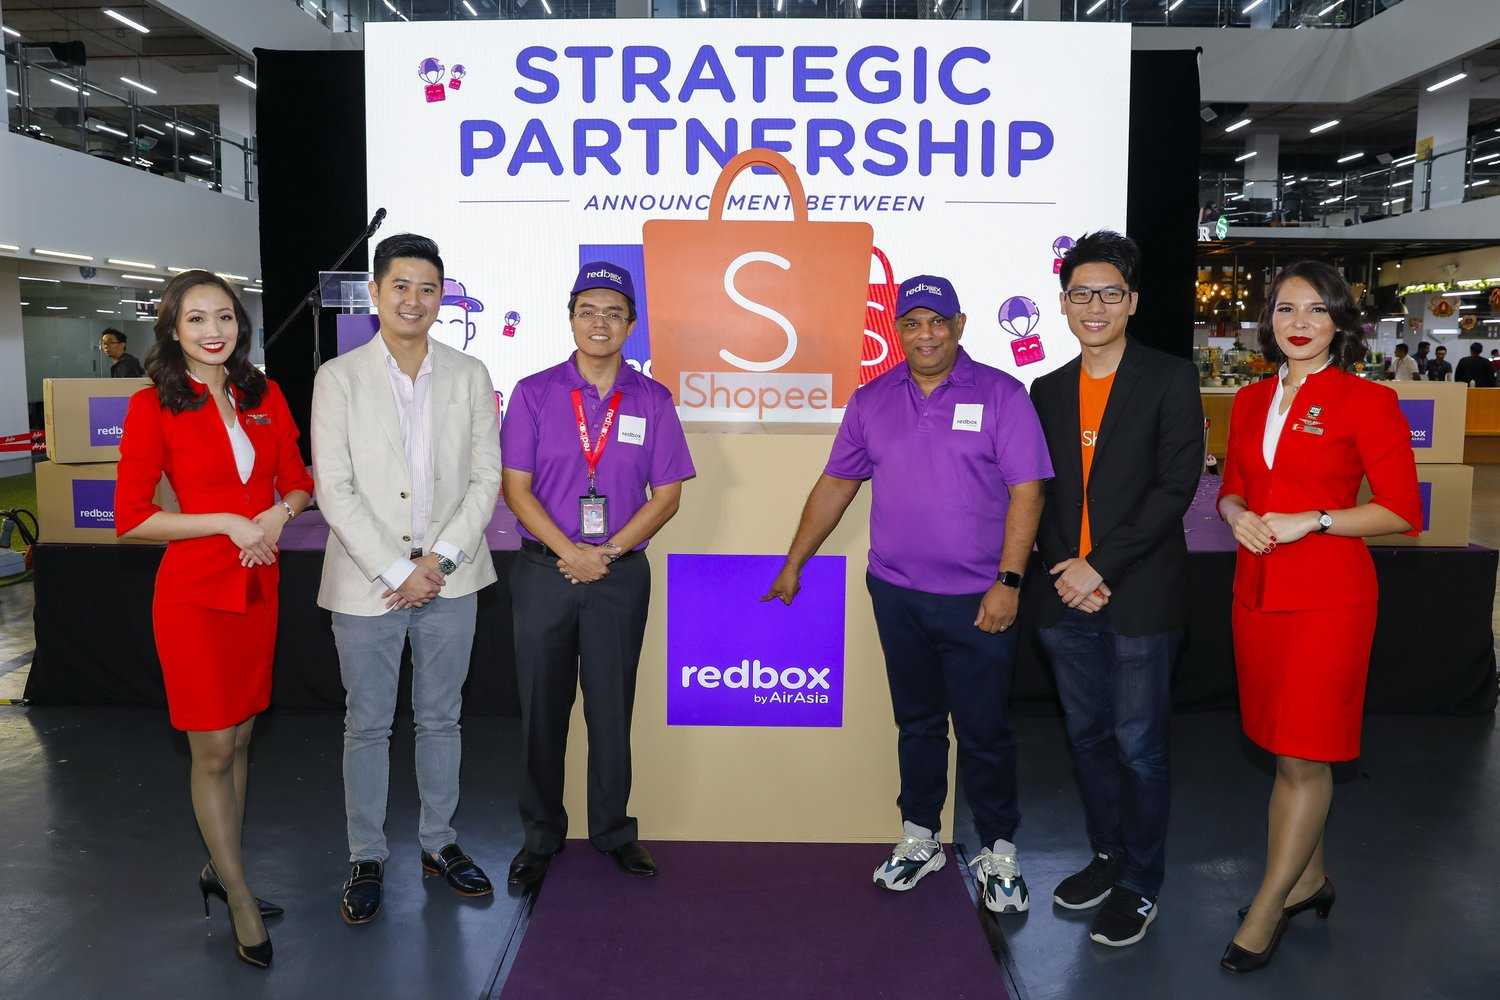 Second from left: Shopee Regional Managing Director Ian Ho; RedBox CEO Dato' Mohd Shukrie Mohd Salleh; AirAsia Group CEO Tan Sri Tony Fernandes and Shopee Head of Operations Esten Mok at the announcement of partnership between RedBox and Shopee.